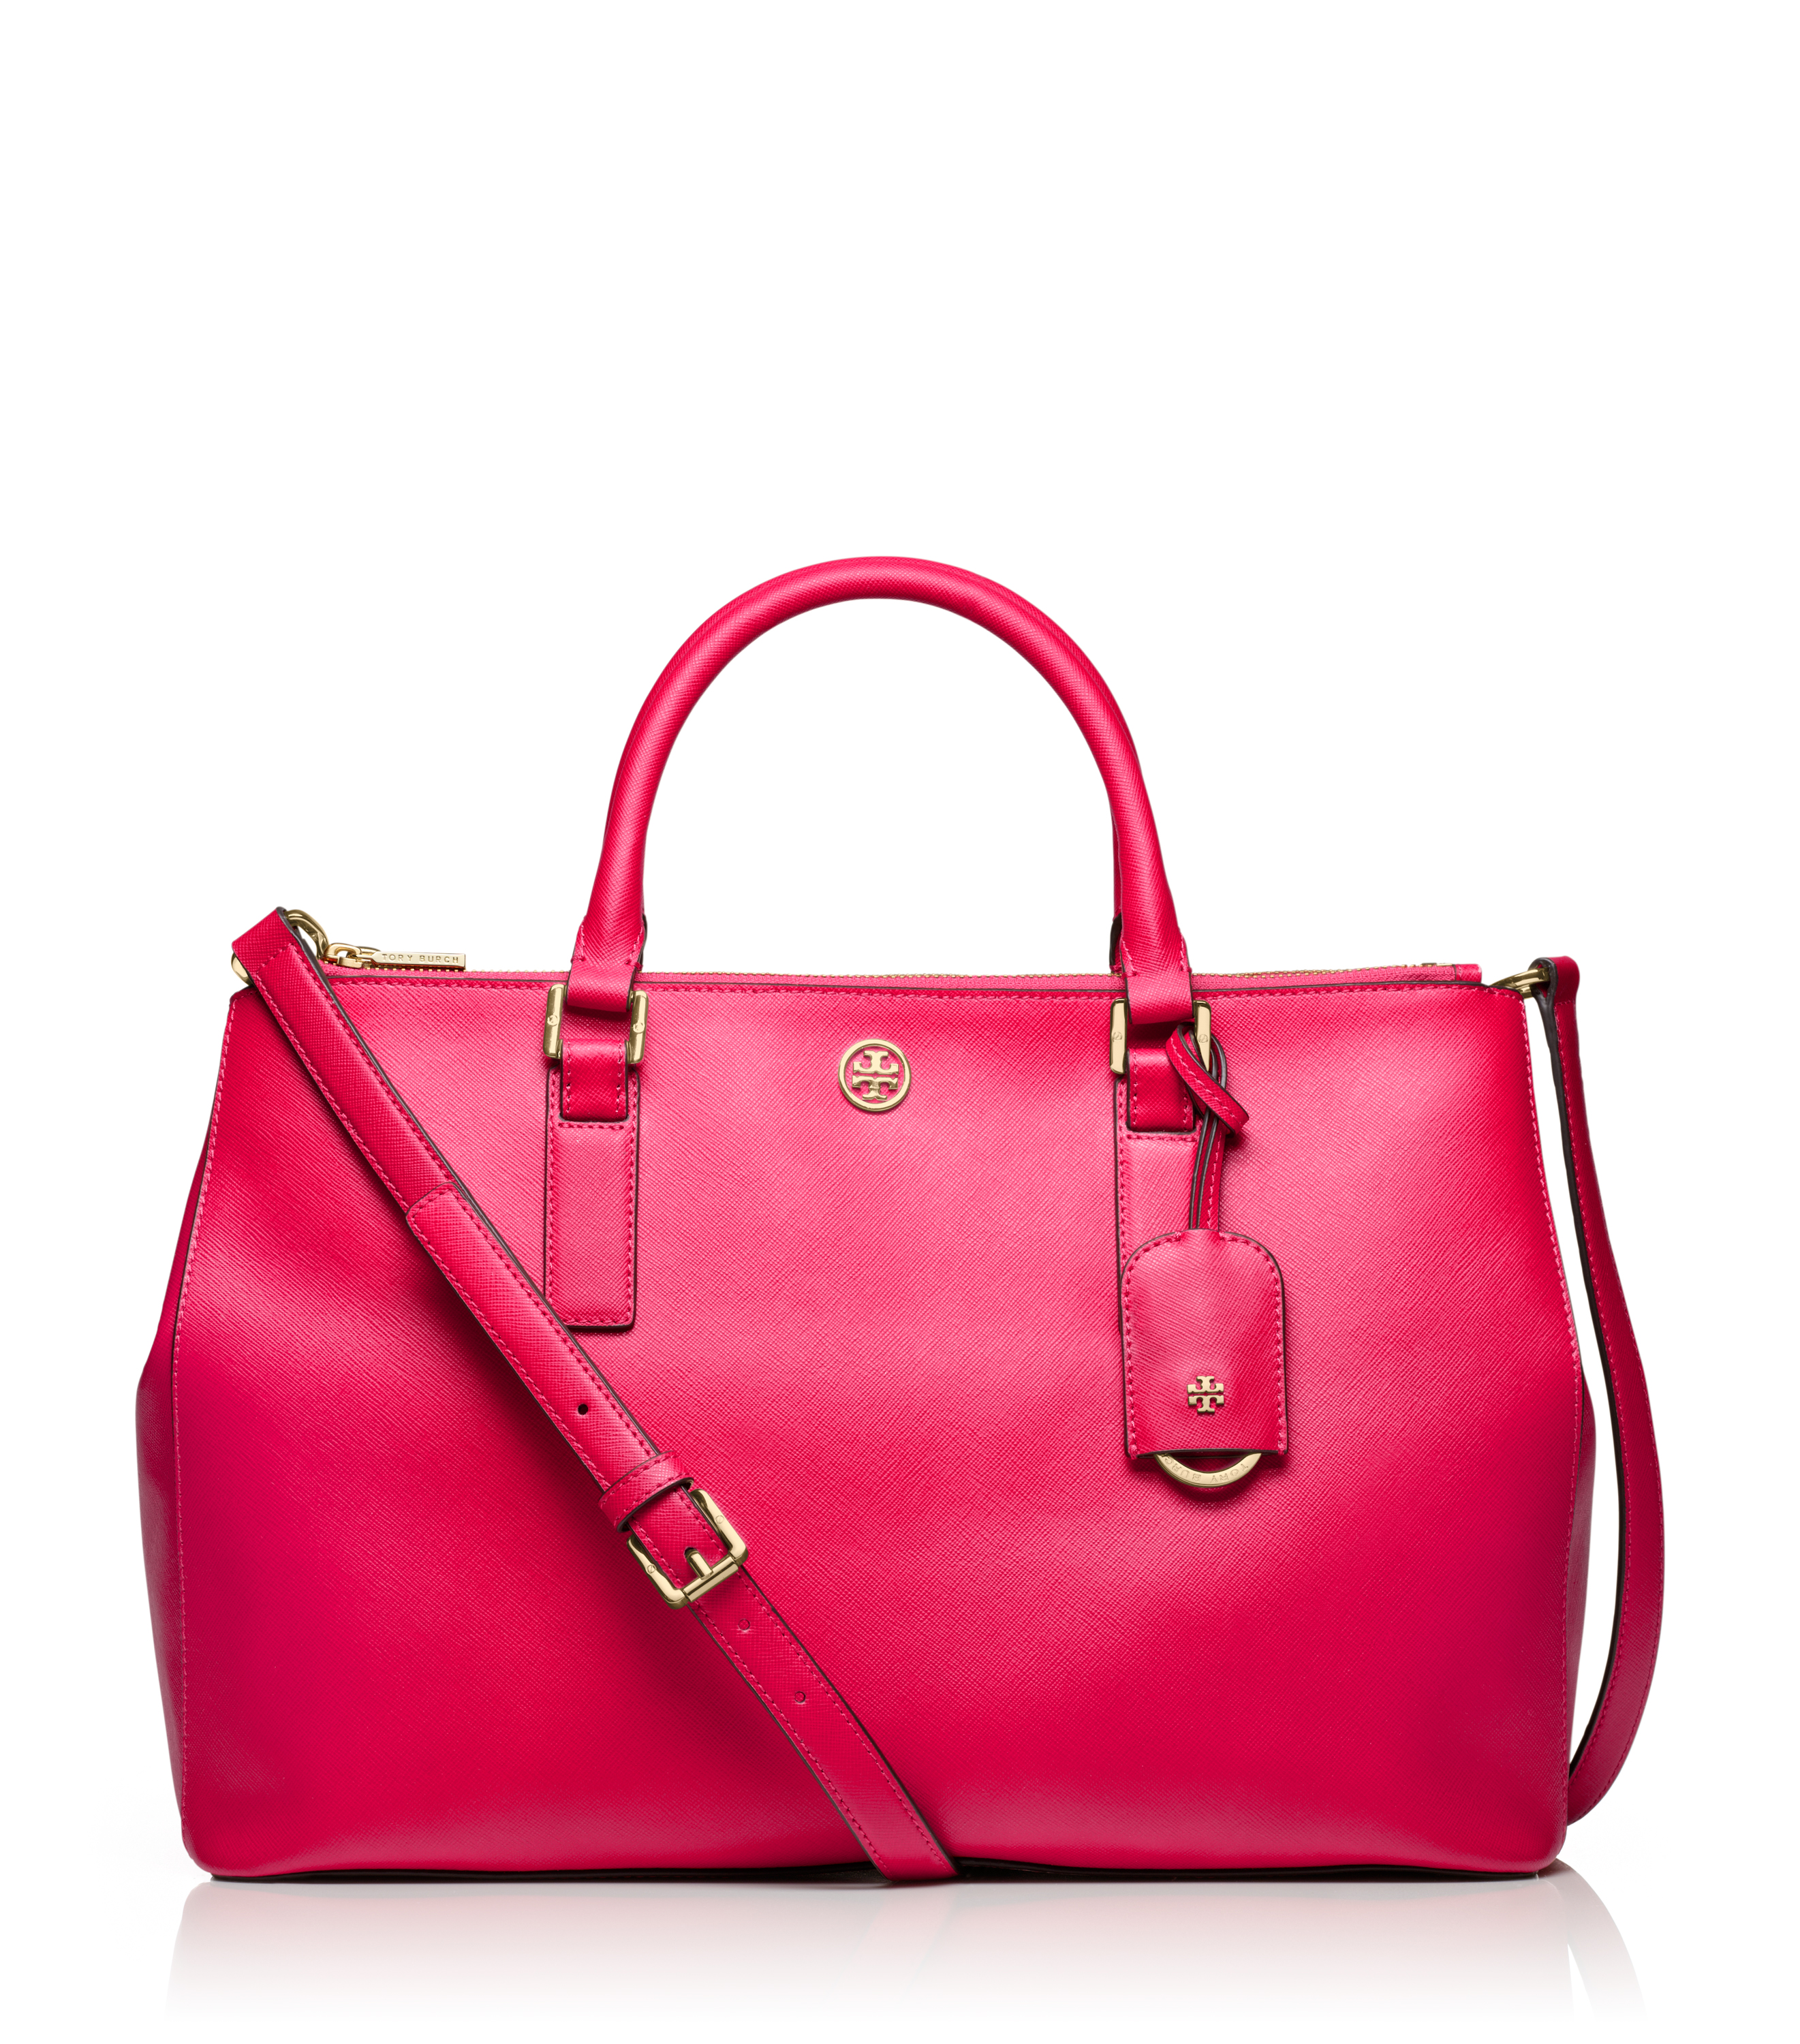 TB Robinson Double Zip Tote in New Carnival